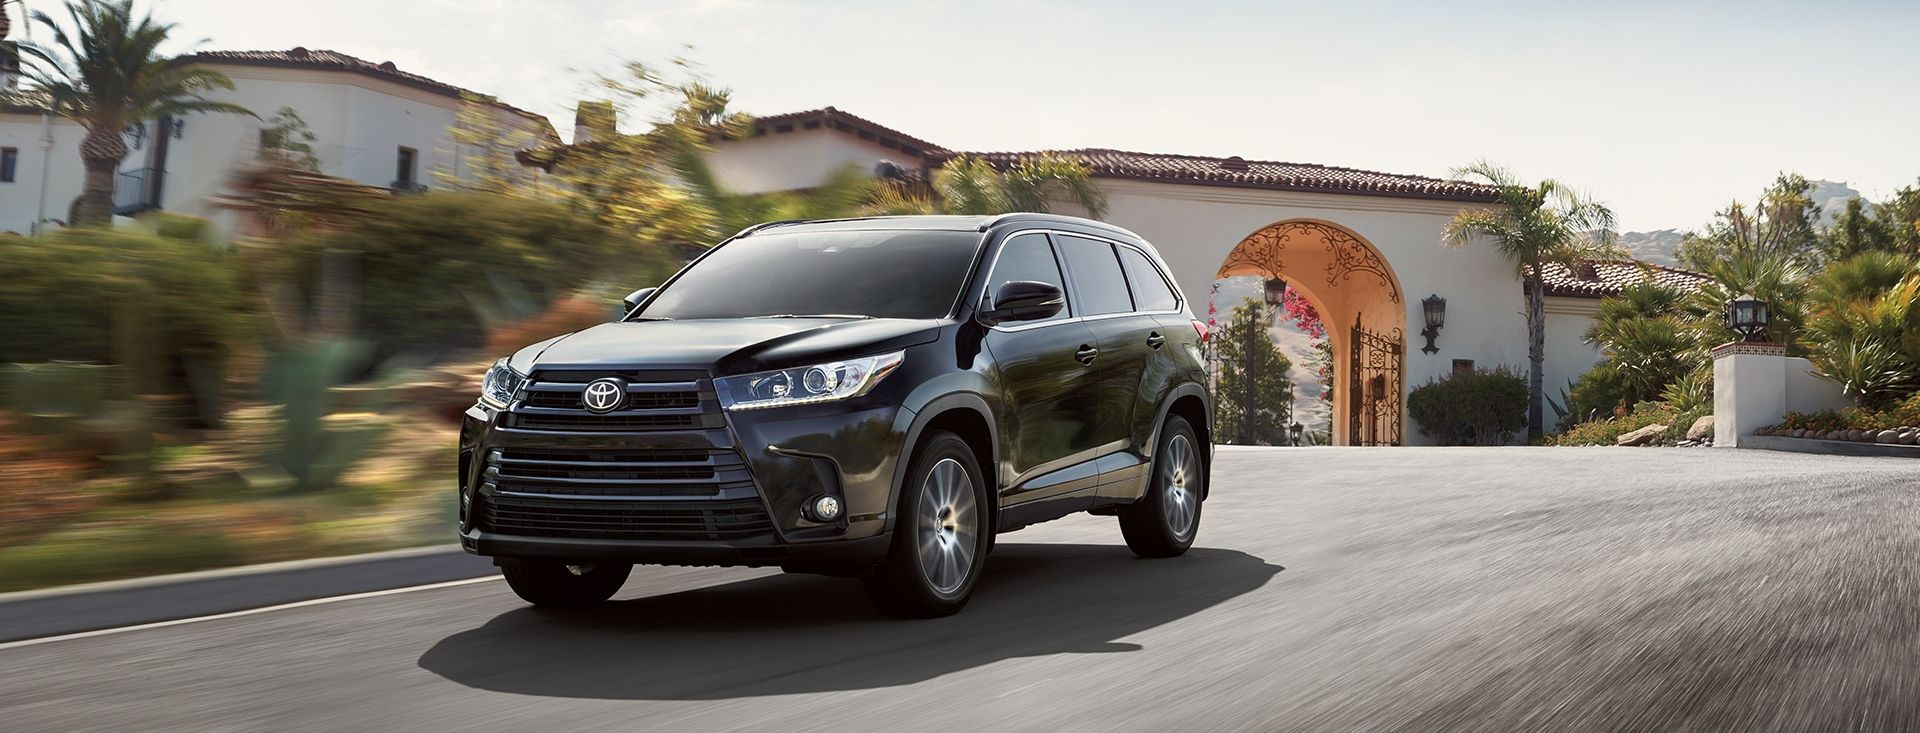 2017 toyota highlander for sale in woburn ma woburn toyota. Black Bedroom Furniture Sets. Home Design Ideas